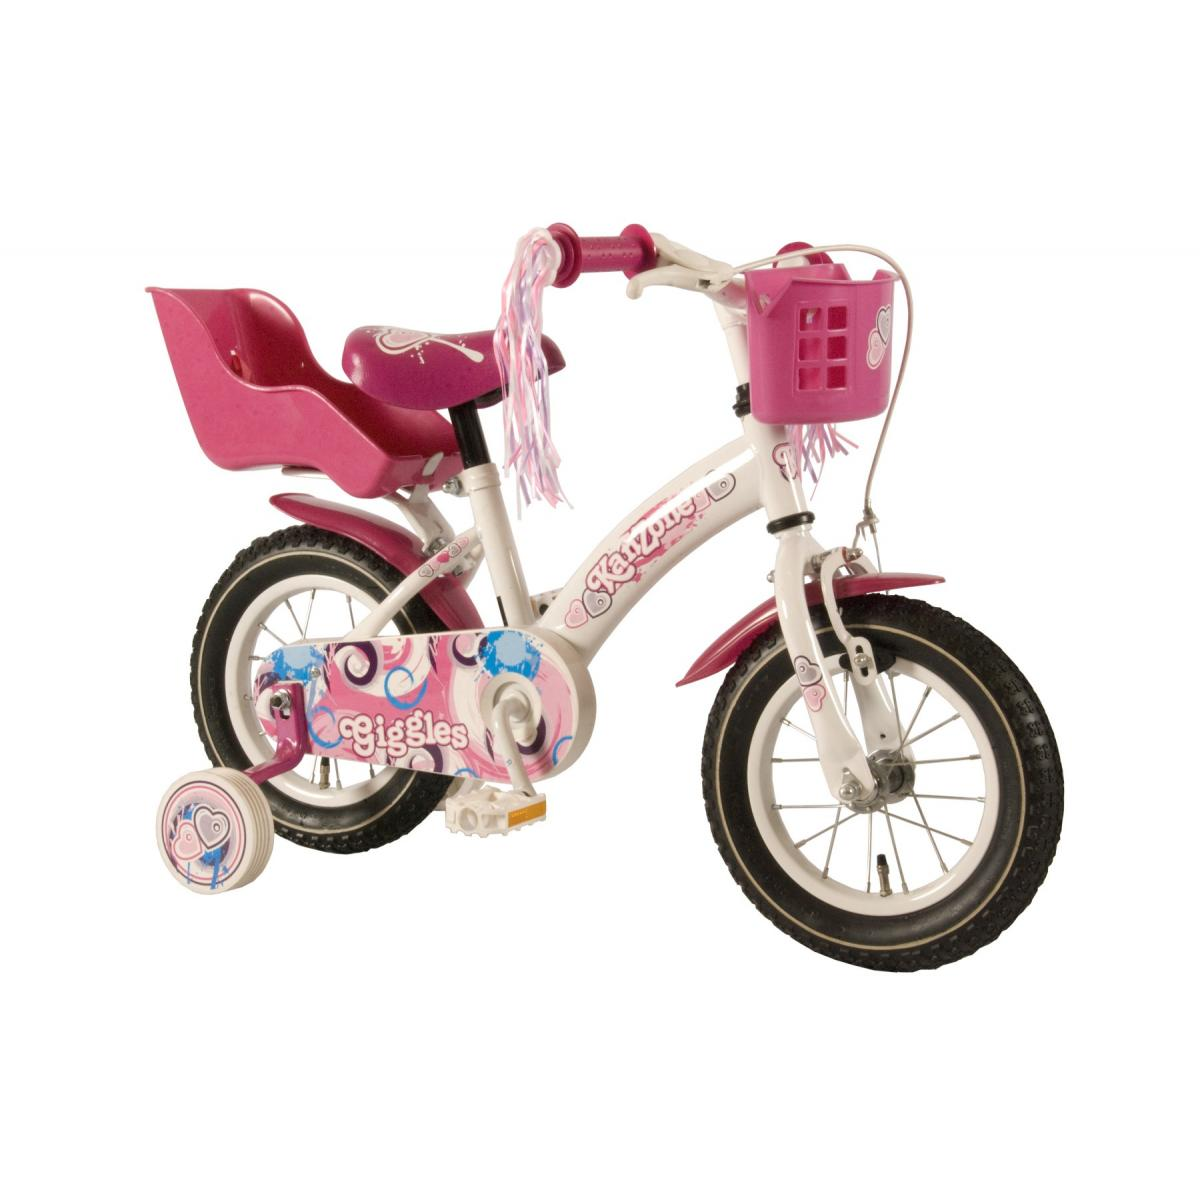 kanzone kinderfahrrad giggles 12 zoll wei rosa kinder. Black Bedroom Furniture Sets. Home Design Ideas